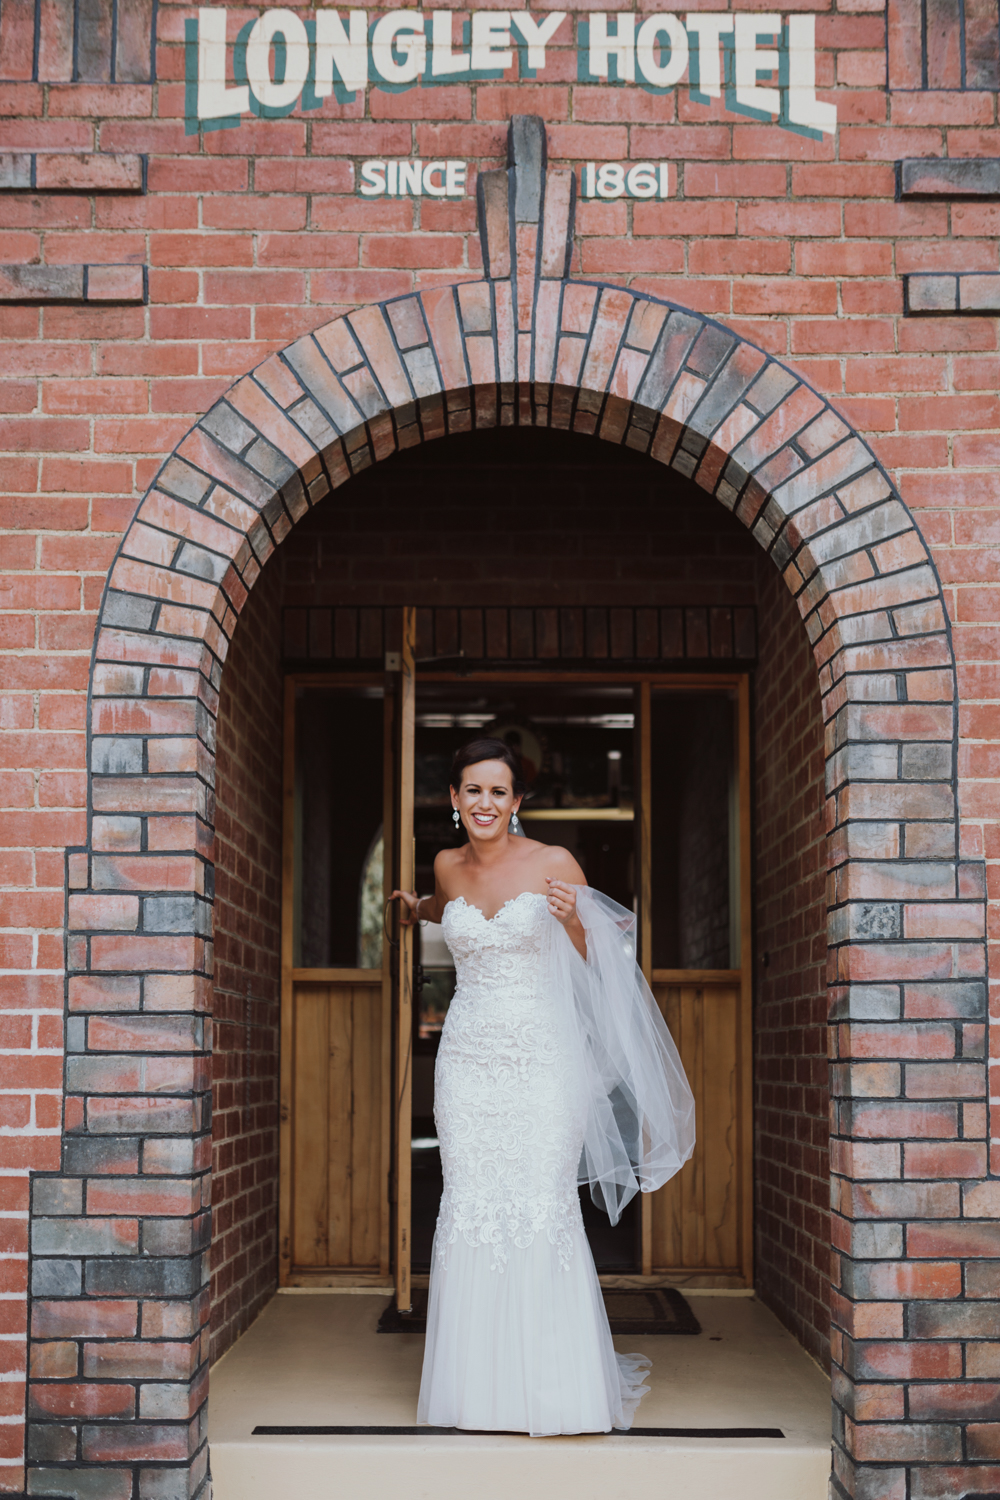 Bride walks out of Longley Hotel in wedding gown.